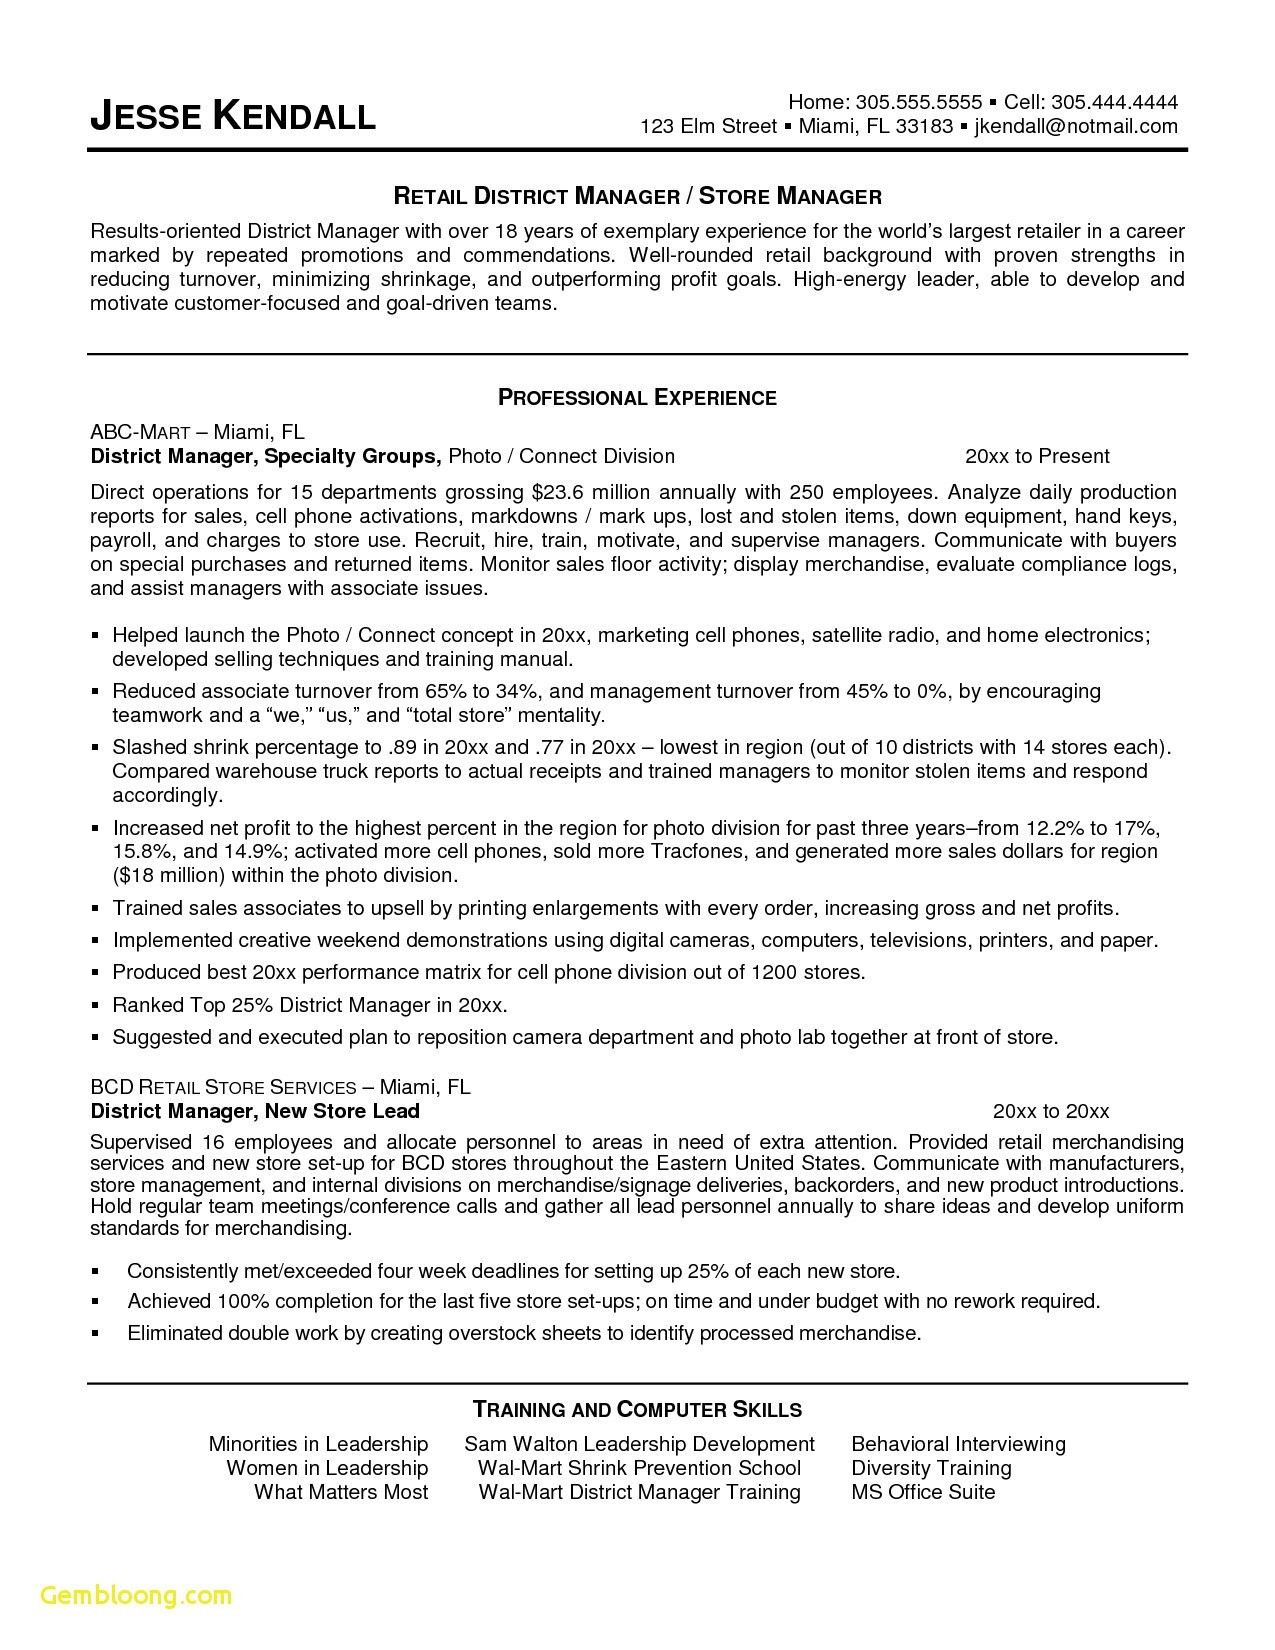 Case Manager Resume - Customer Service Manager Resume Lovely 21 Fresh Case Manager Resume